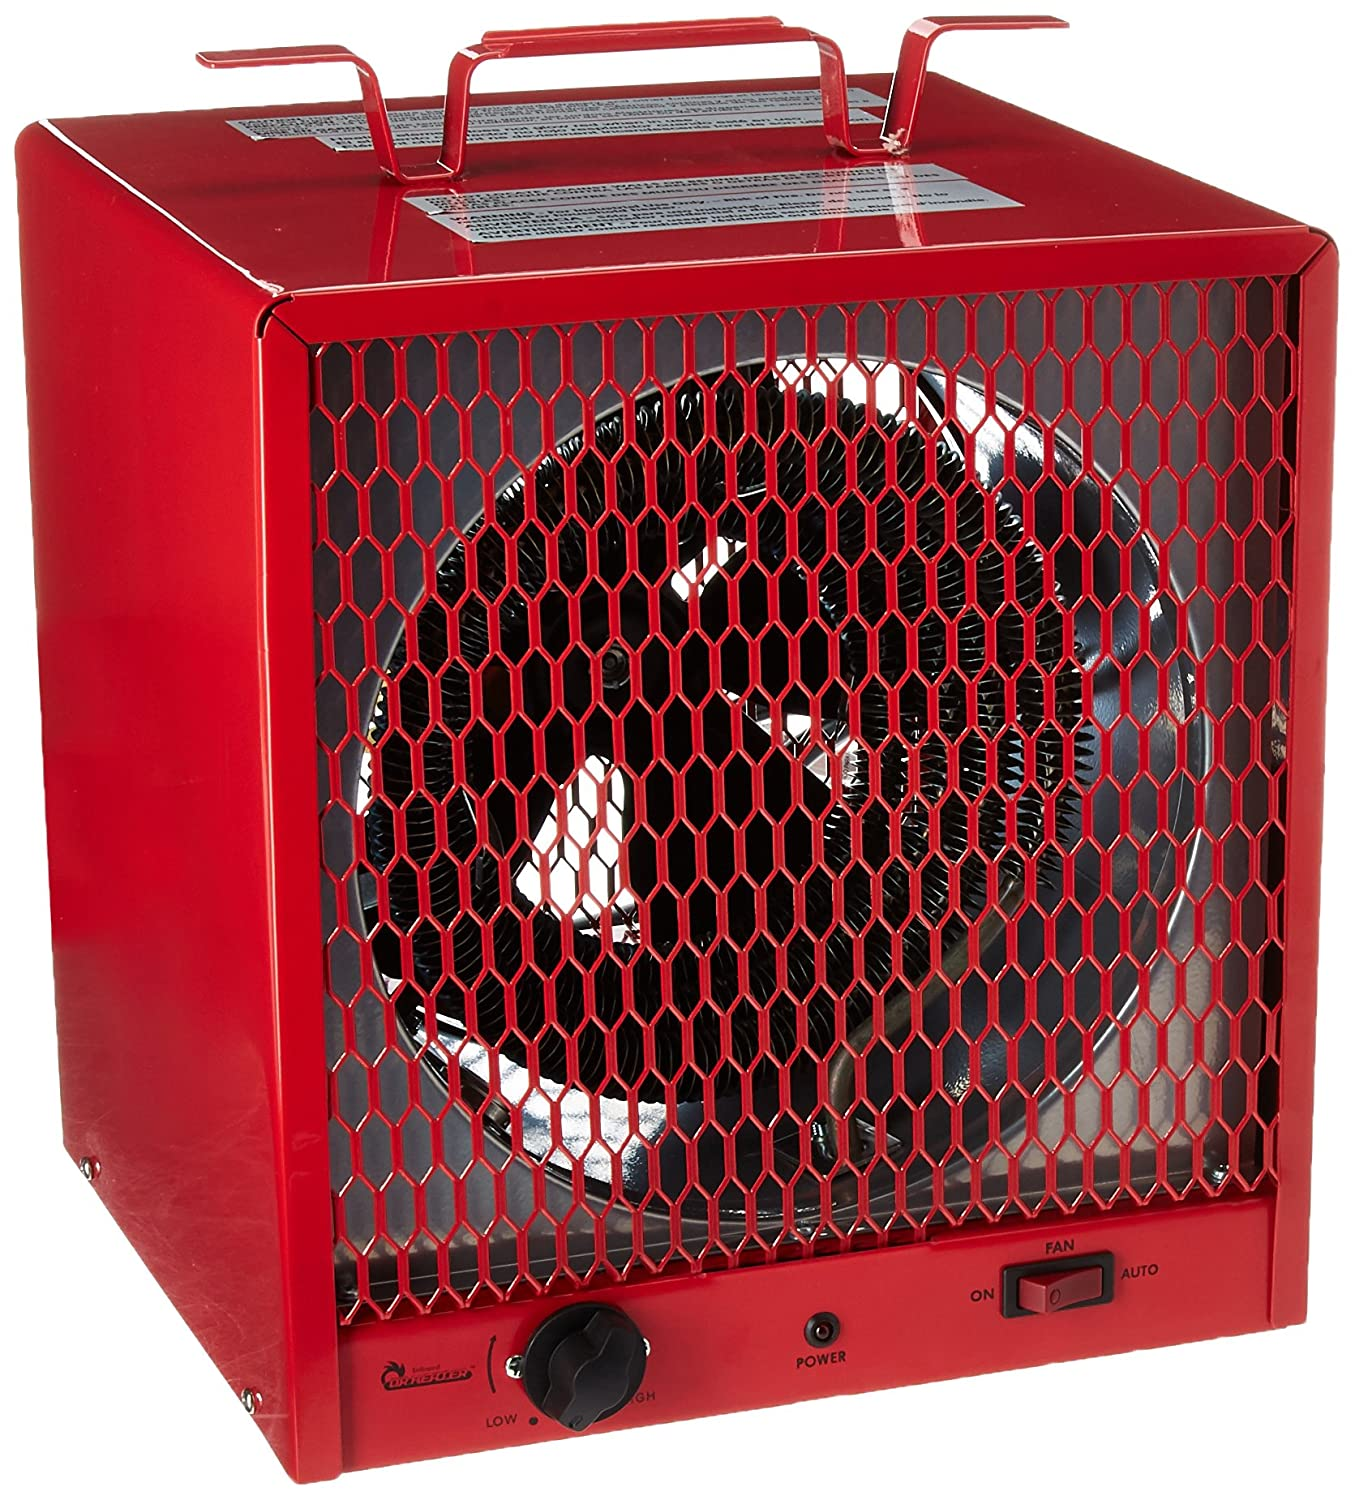 Dr. Infrared Heater DR-988 – Best rated Overall